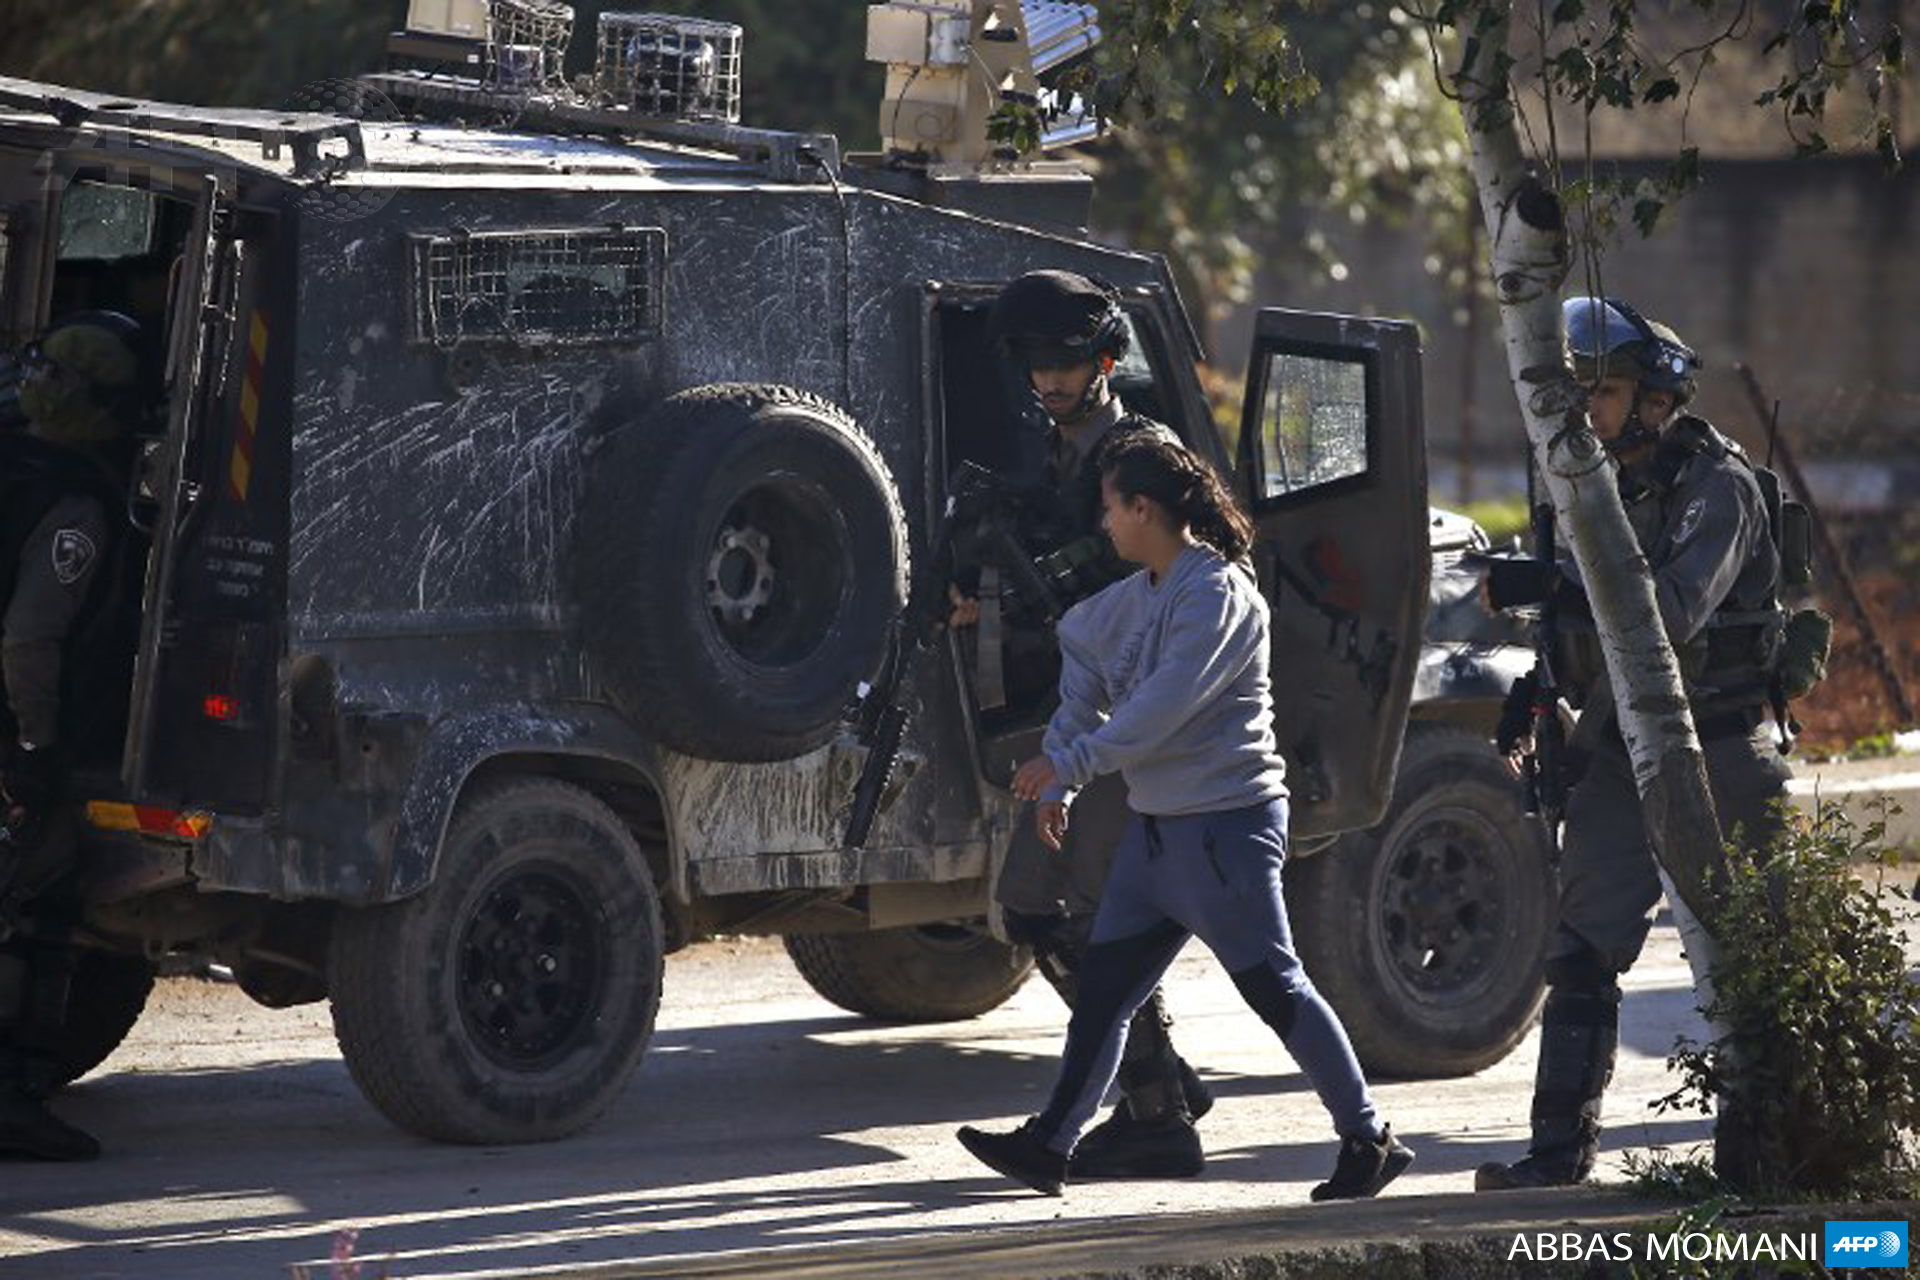 Israeli soldiers detain a Palestinian girl during clashes between Palestinian demonstrators and Israeli troops in Ramallah, near the Jewish settlement of Beit El, in the occupied West Bank on December 13, 2018. (Photo: AFP / Abbas Momani)